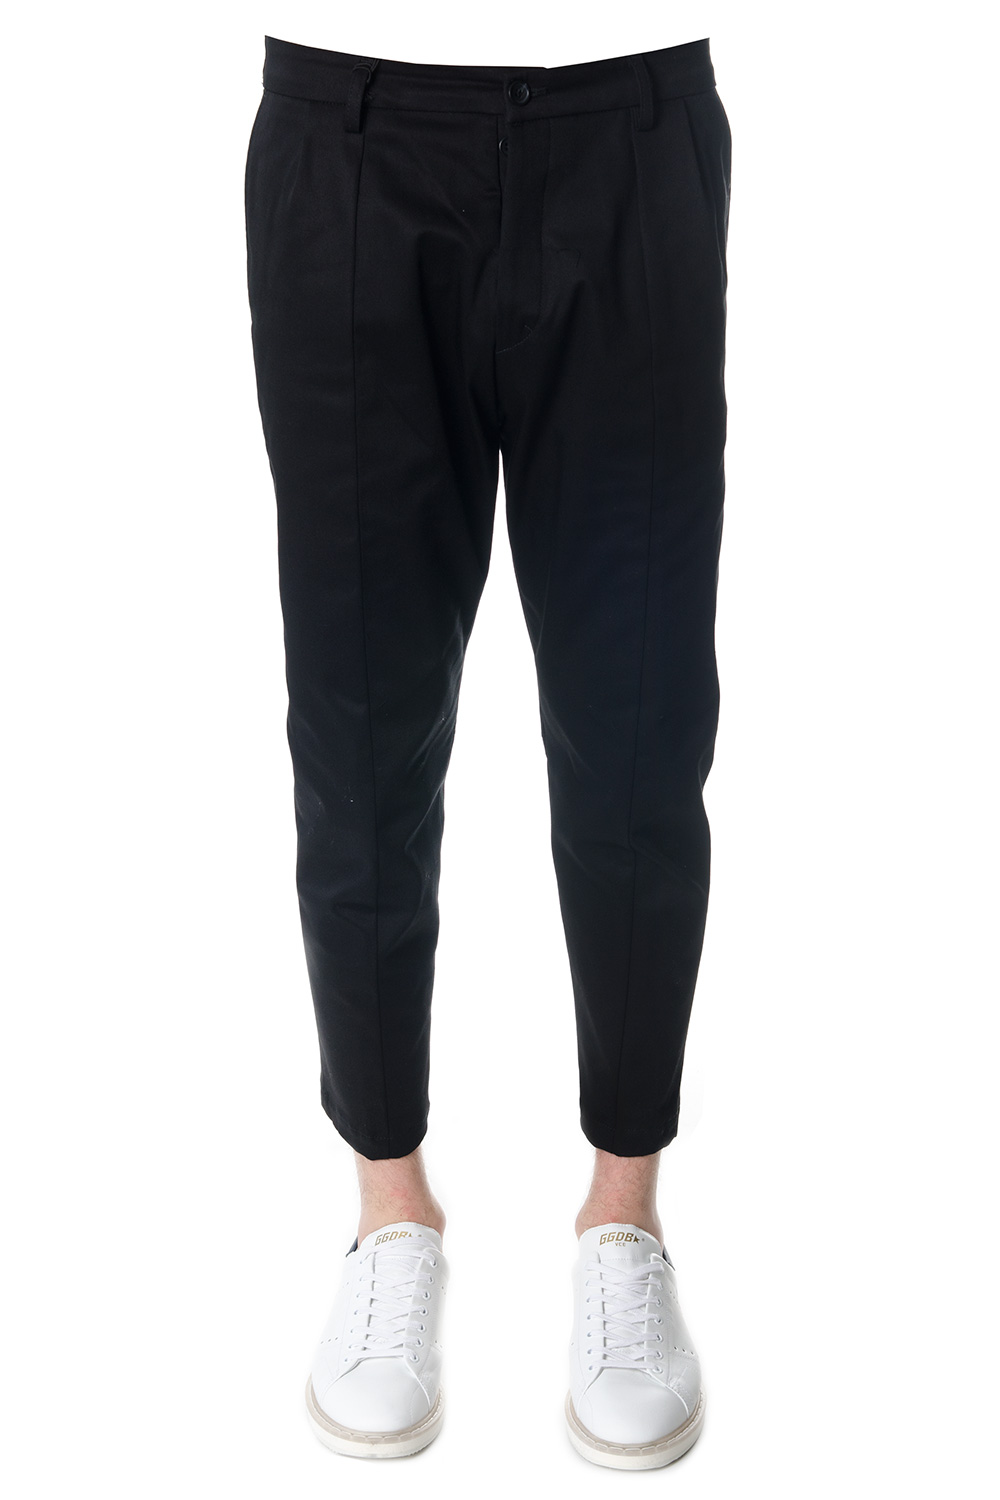 ff3e02fea09b OVERSIZED BLACK COTTON TROUSERS SS 2018 - LOW BRAND - Boutique Galiano